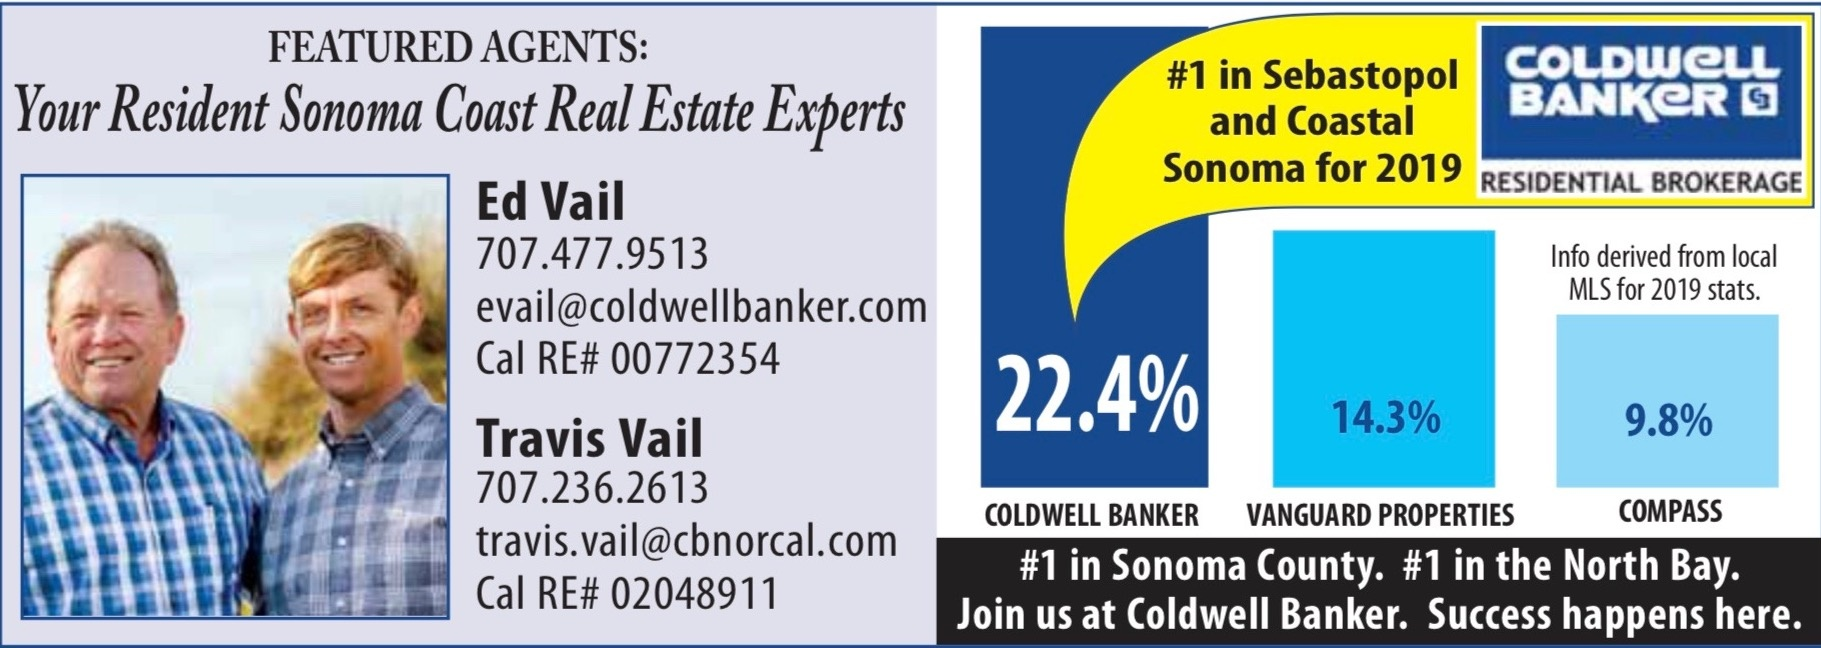 Coldwell Banker #1